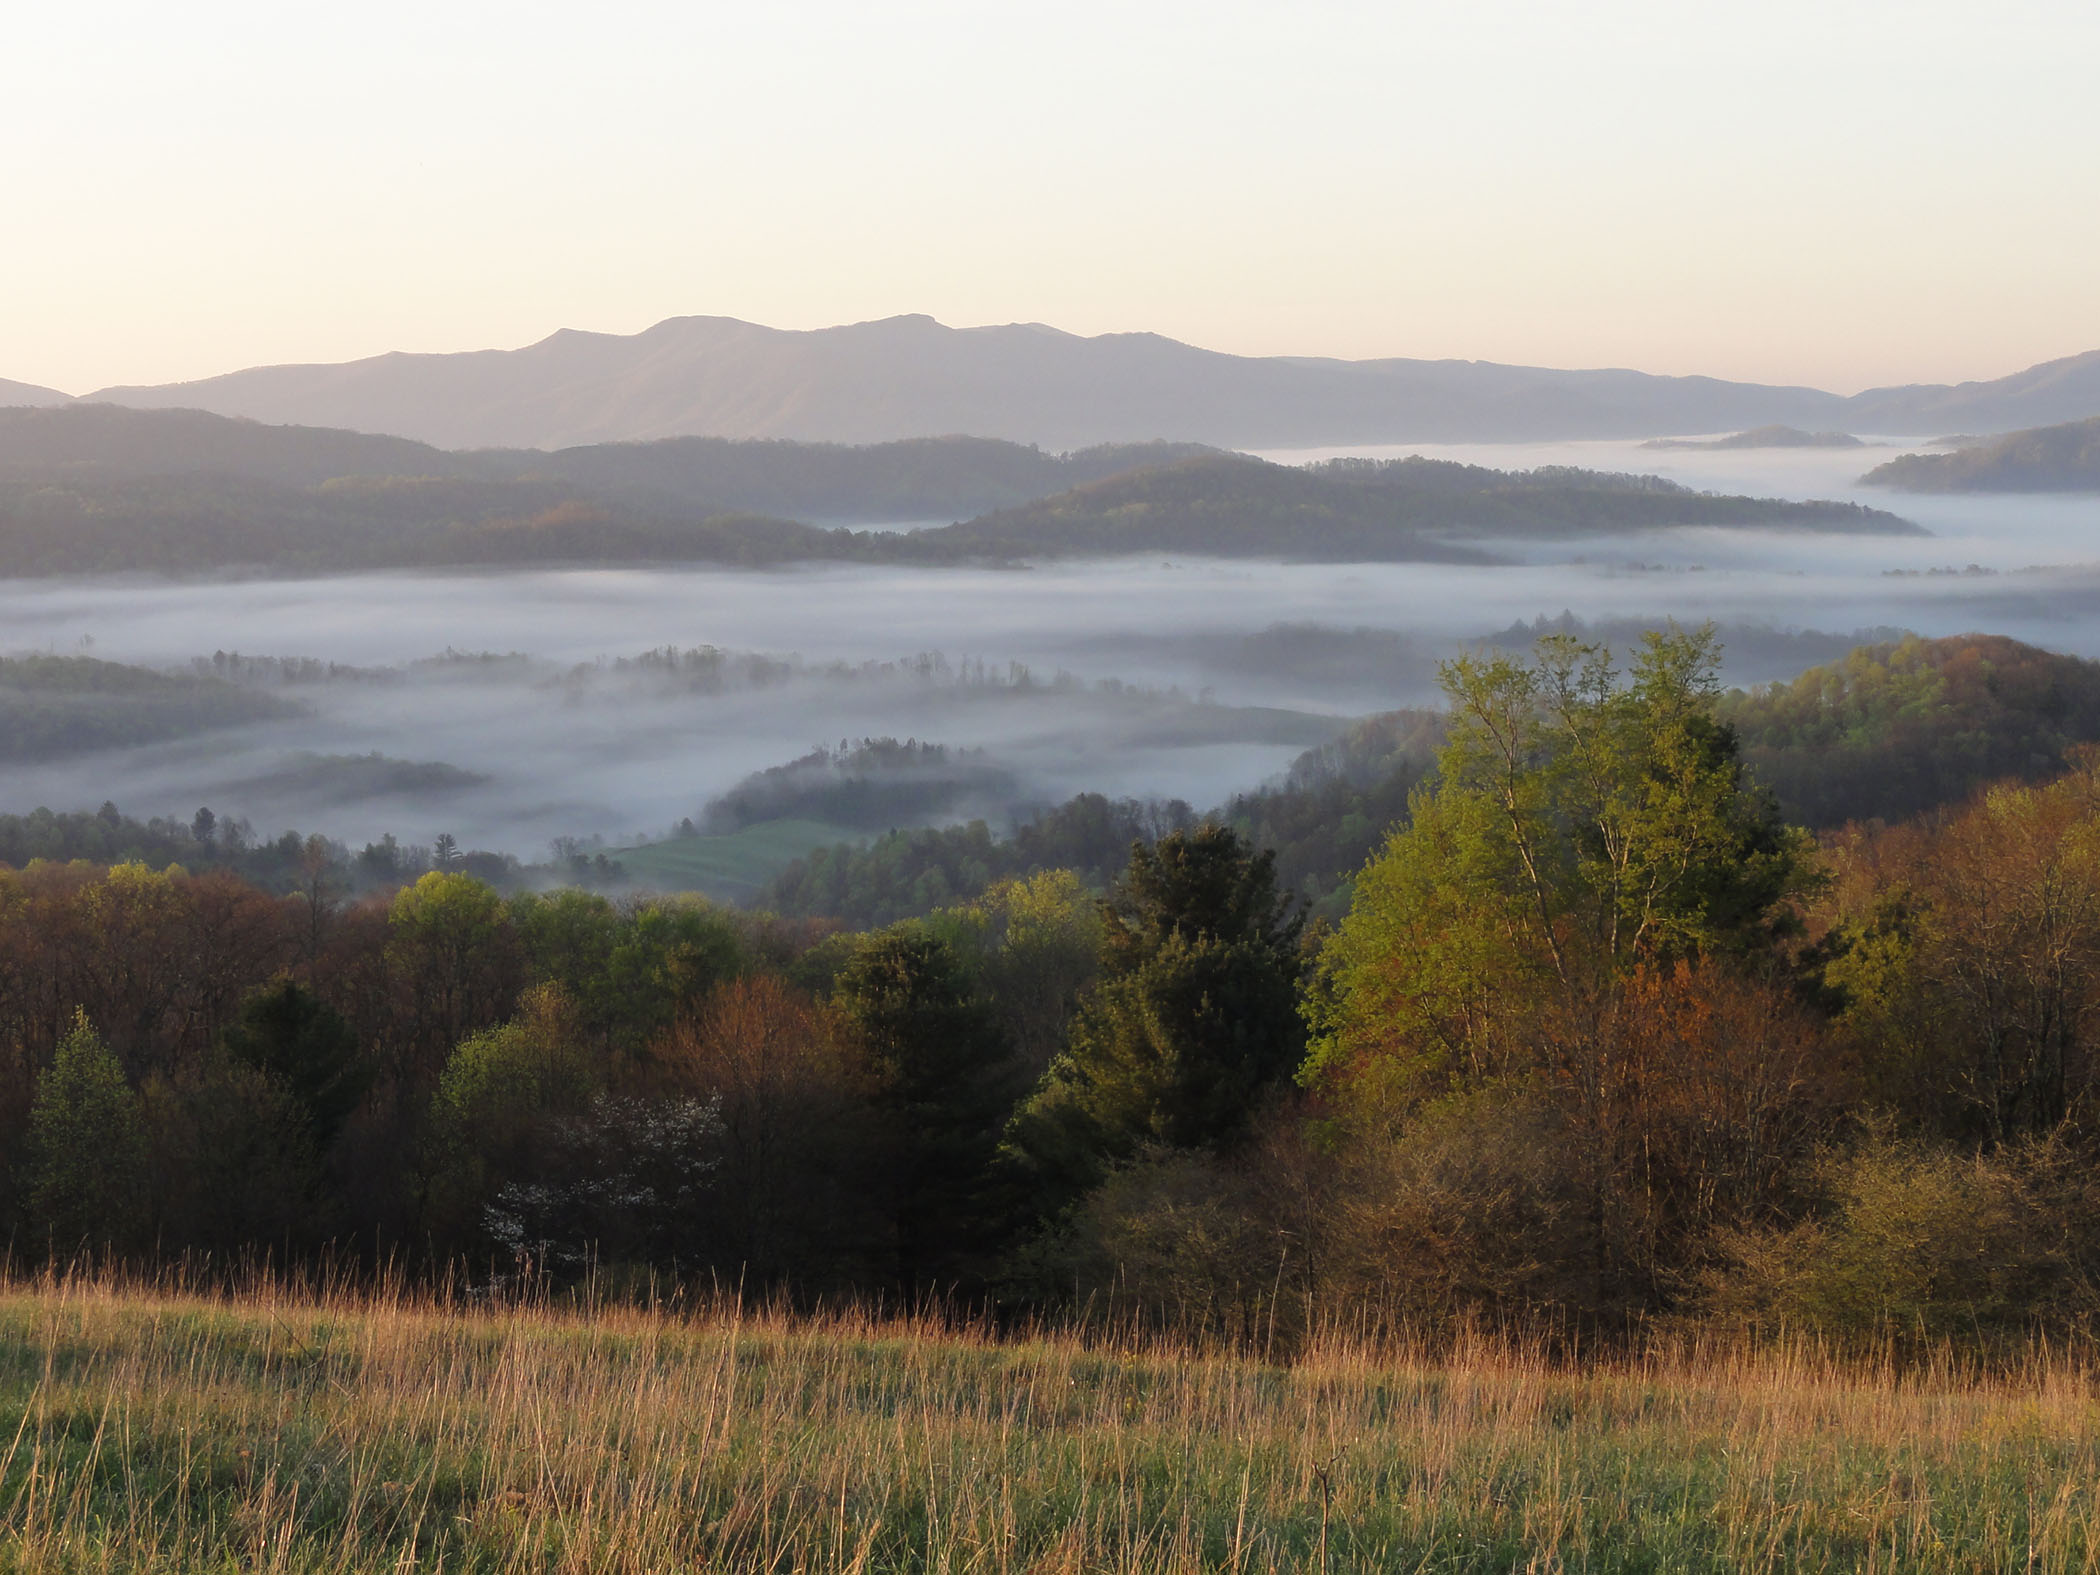 Photo: Overlooking Cut Laurel Gap from hilltop. Forests are changing to fall colors. A heavy mist hangs over the valley.